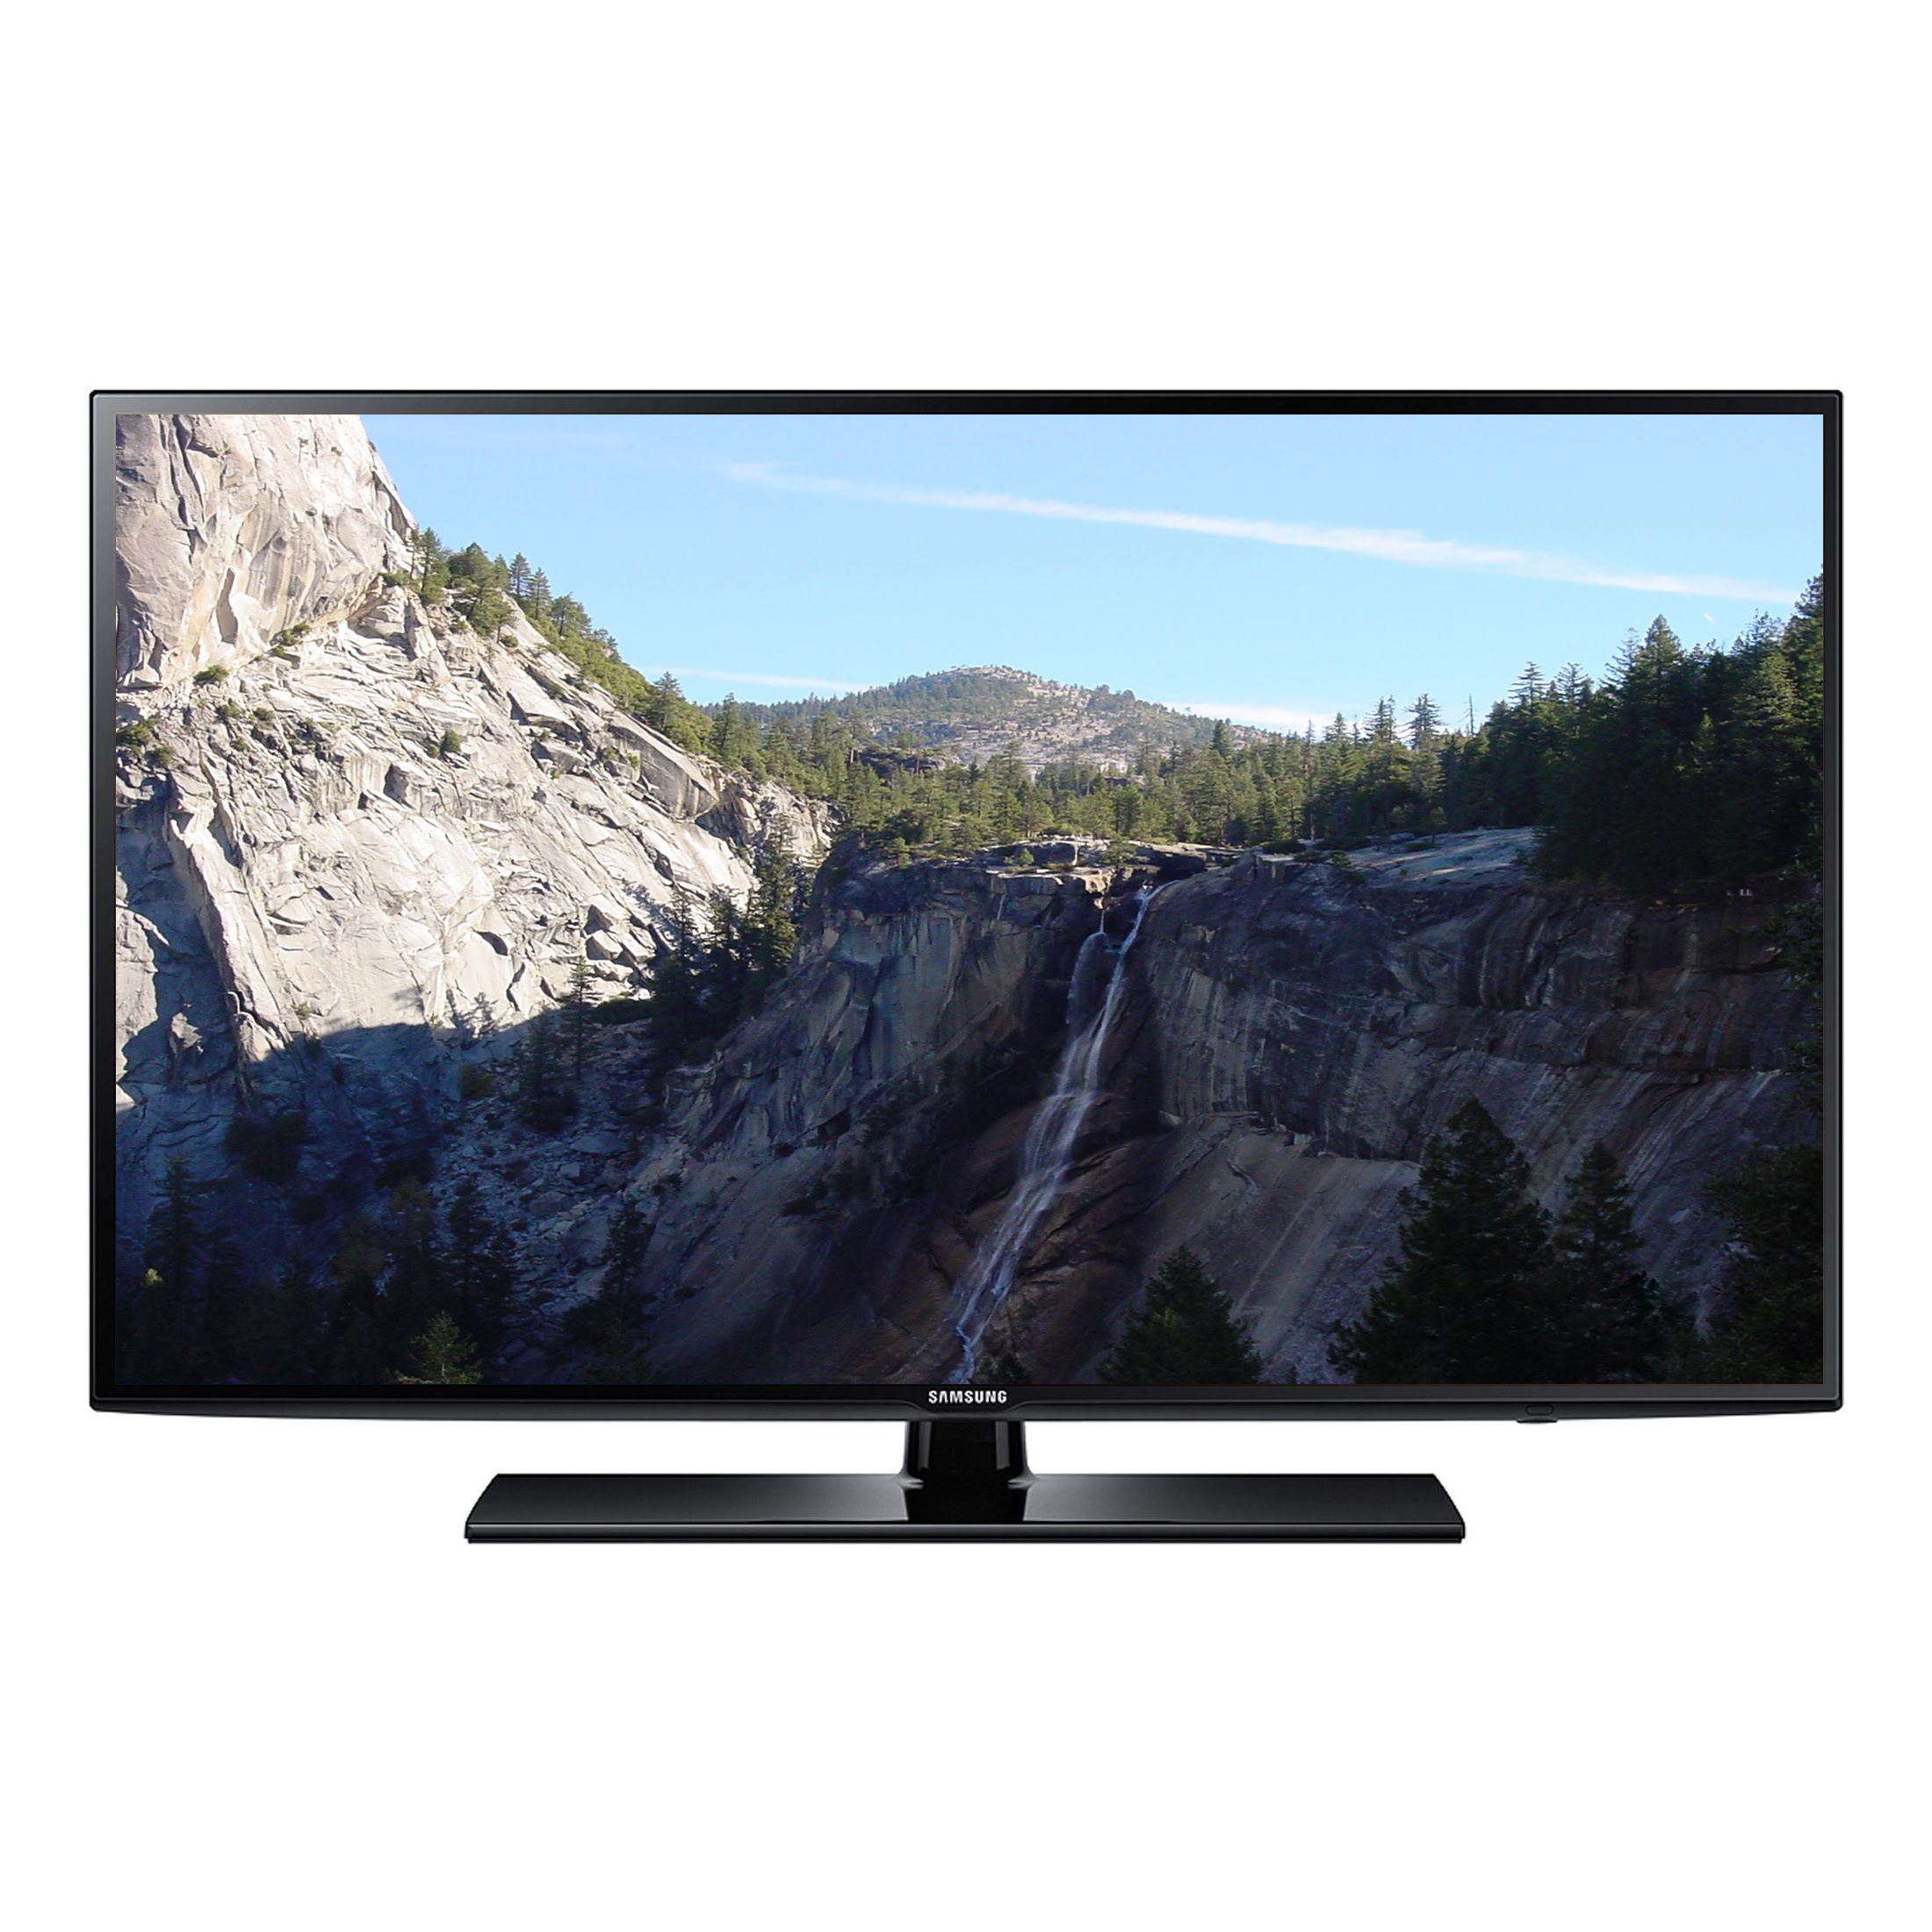 Samsung Refurbished 60 Class 1080p LED Smart Hdtv - UN60J620DA